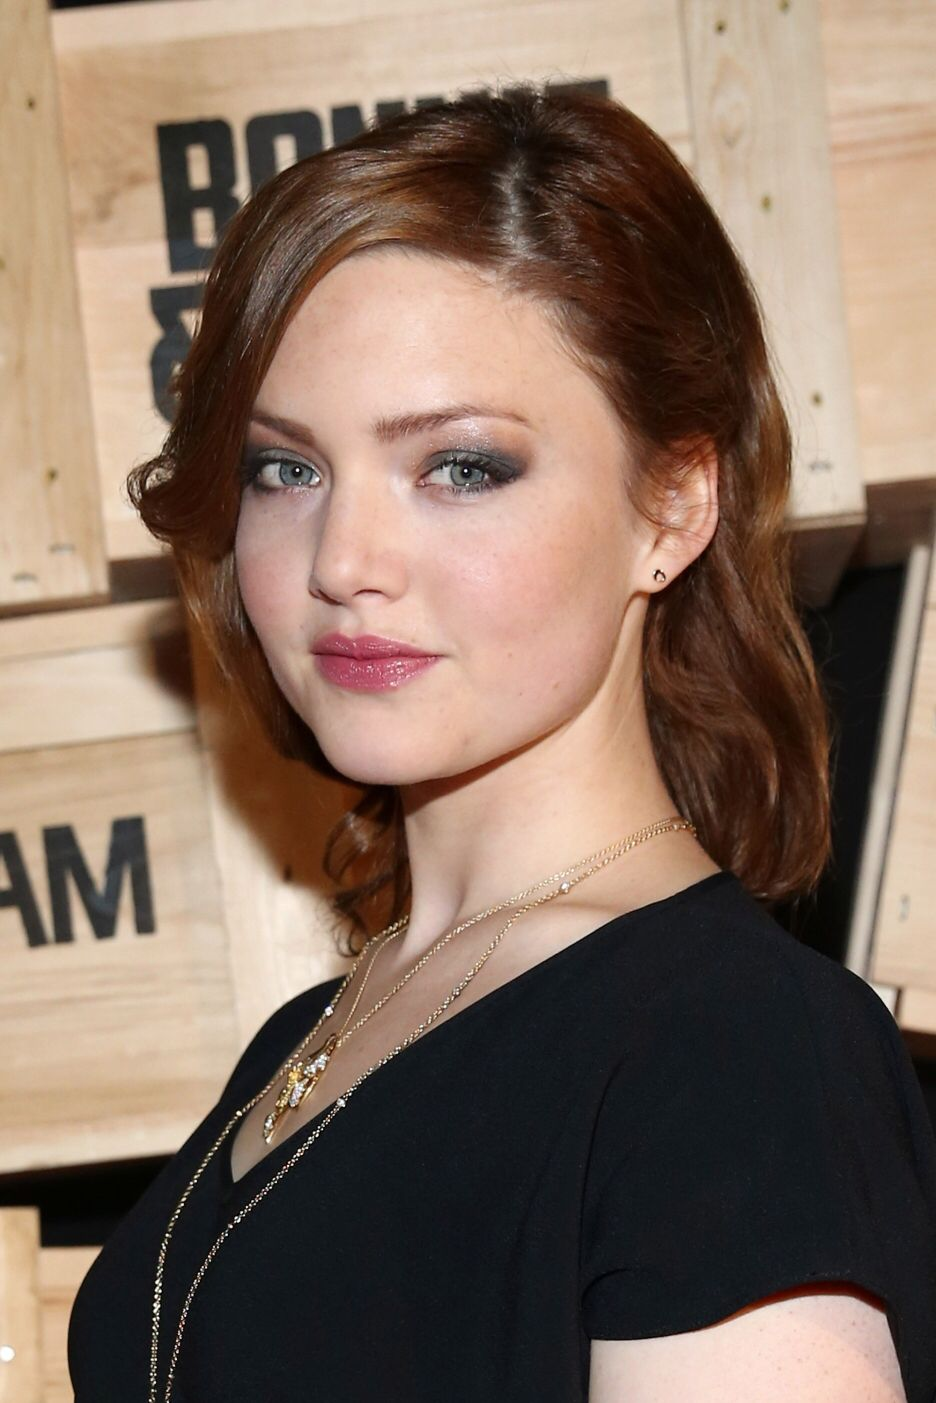 Celebrites Holliday Grainger nude (41 photos), Sexy, Sideboobs, Feet, cameltoe 2017